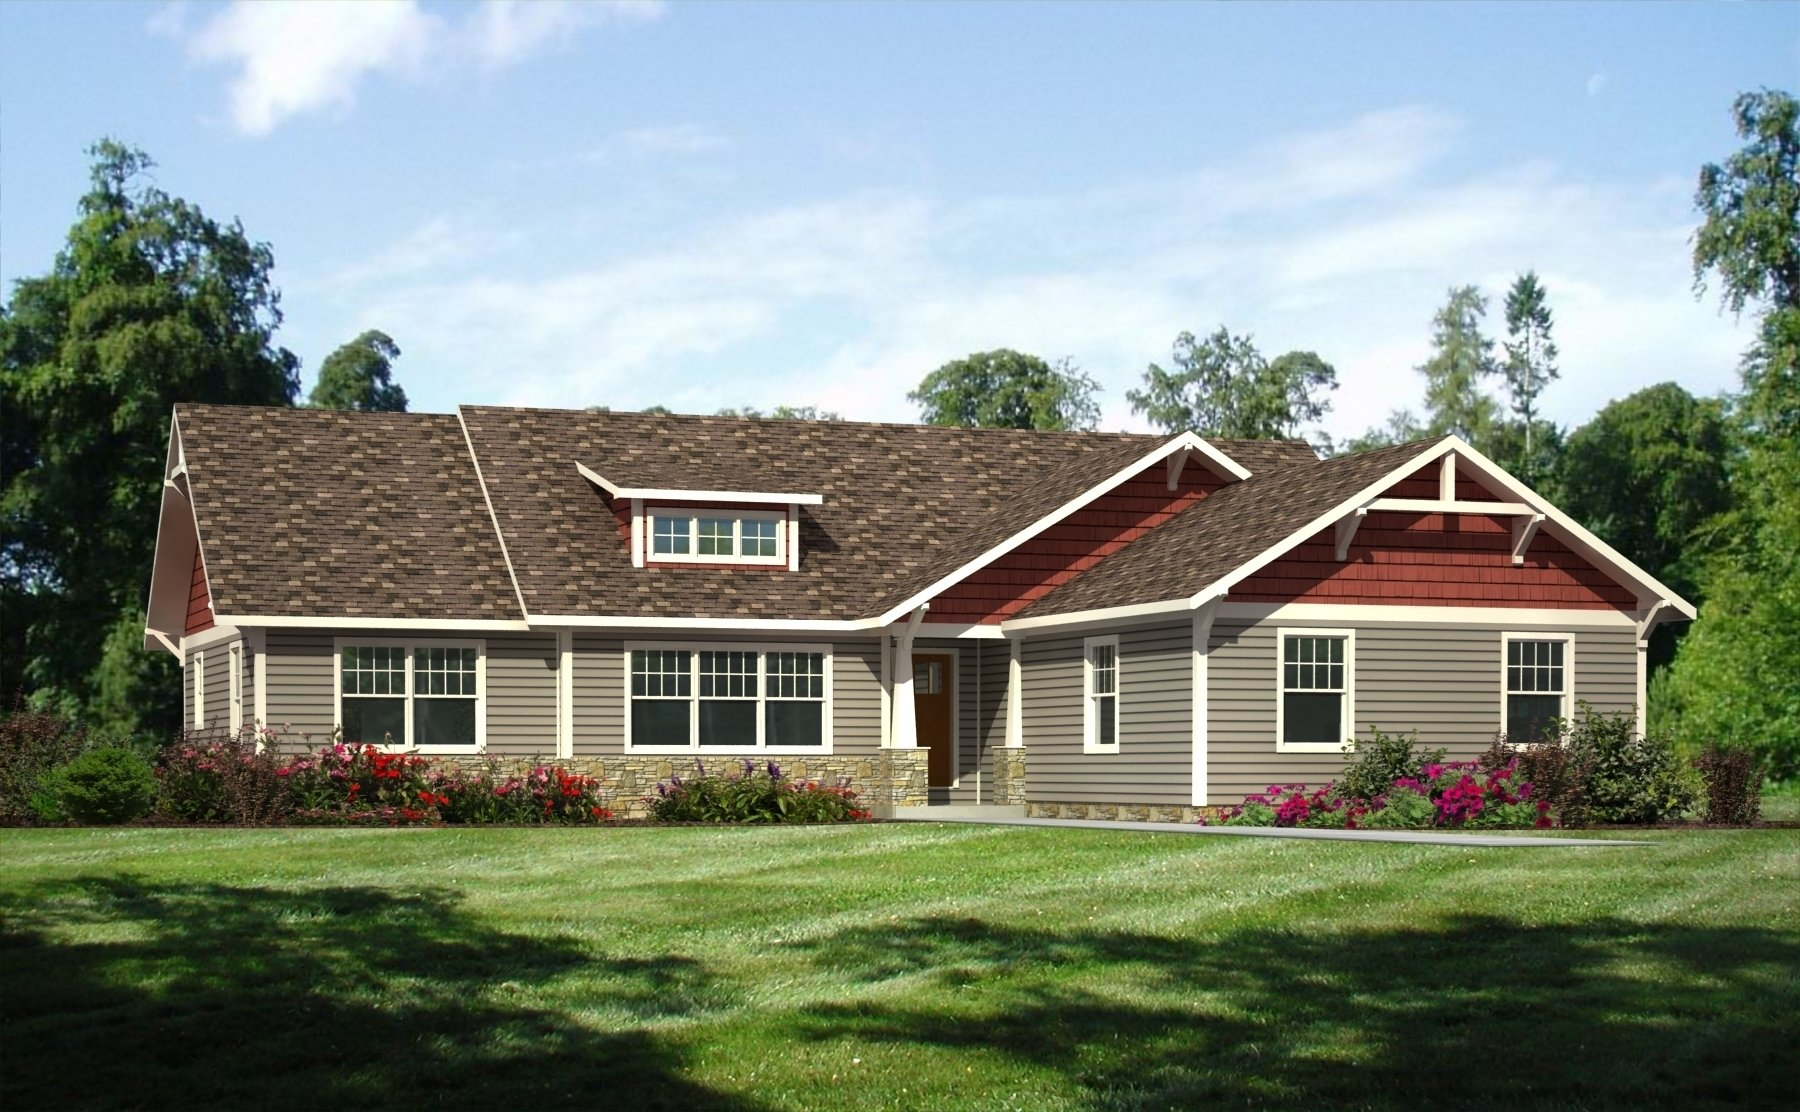 10 Best Exterior Paint Ideas For Ranch Style Homes exterior design astounding 1960s ranch house pint colors brick